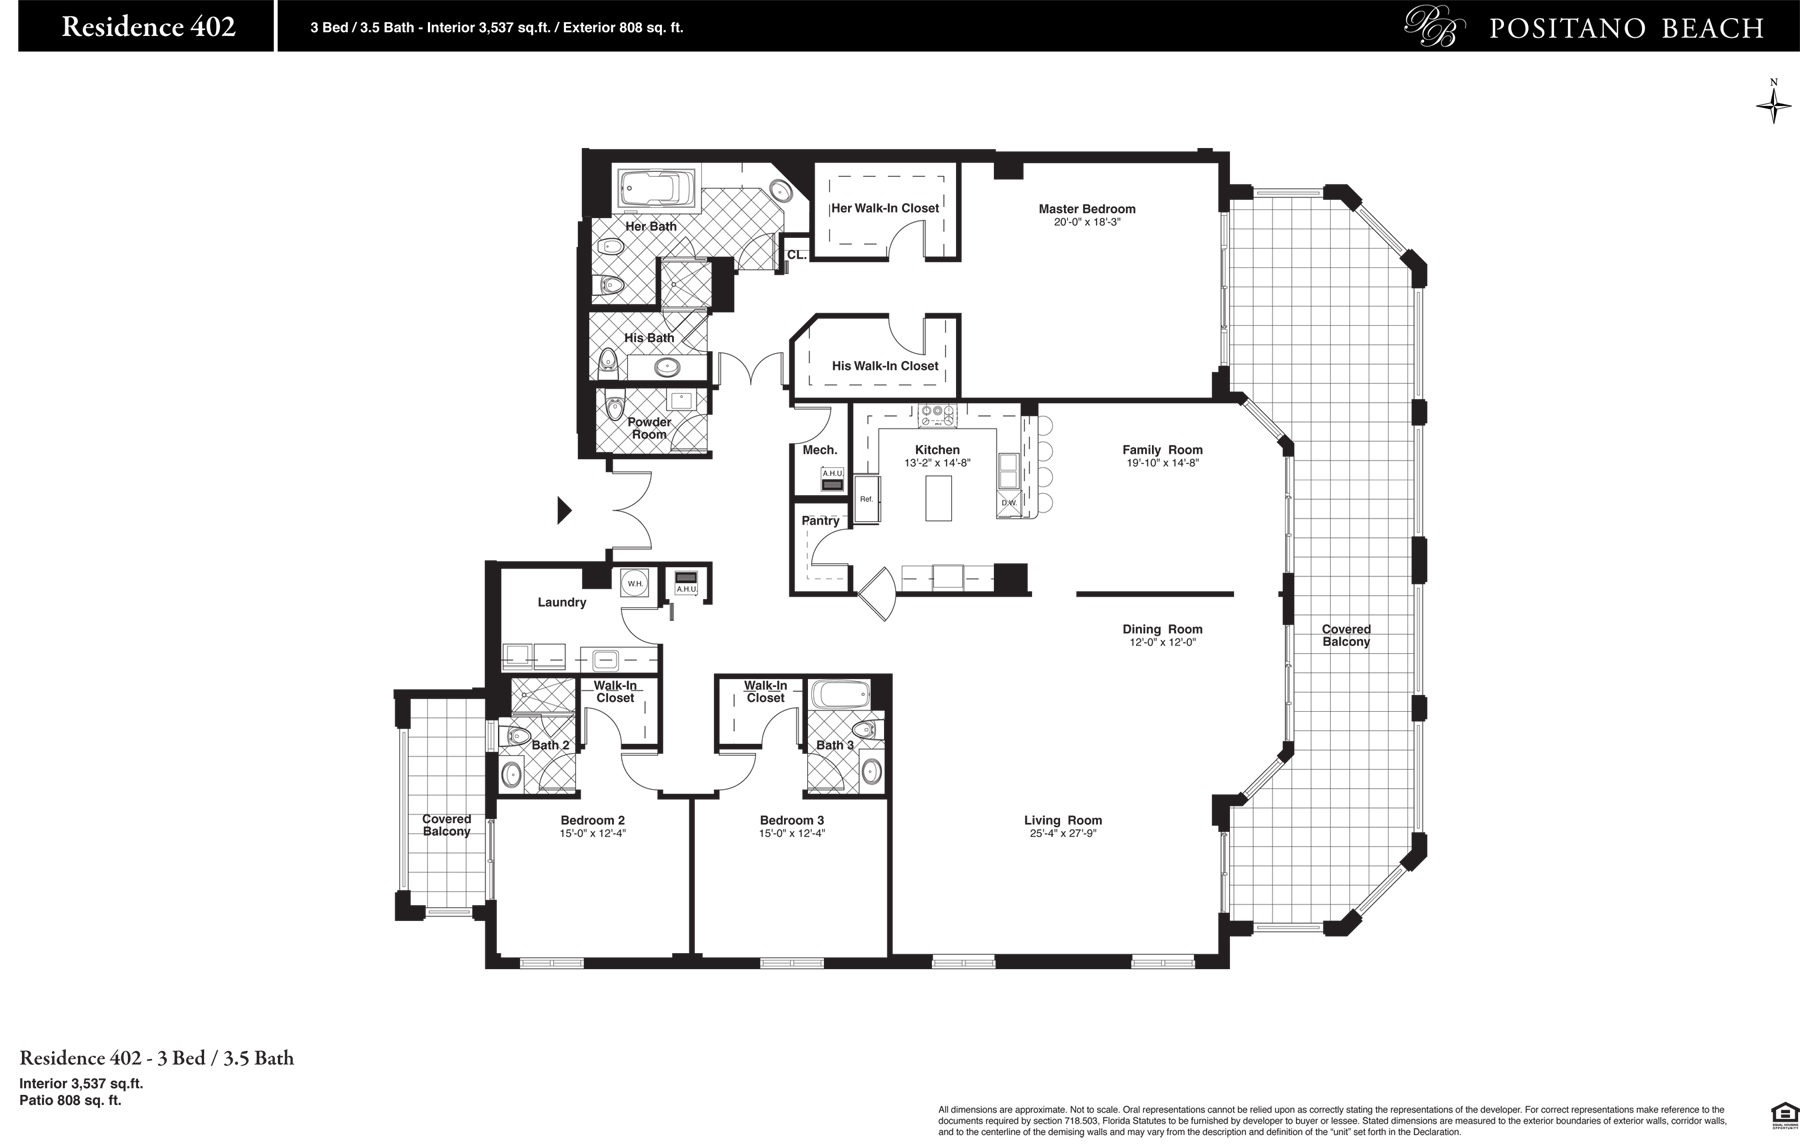 Positano Beach - Floorplan 5